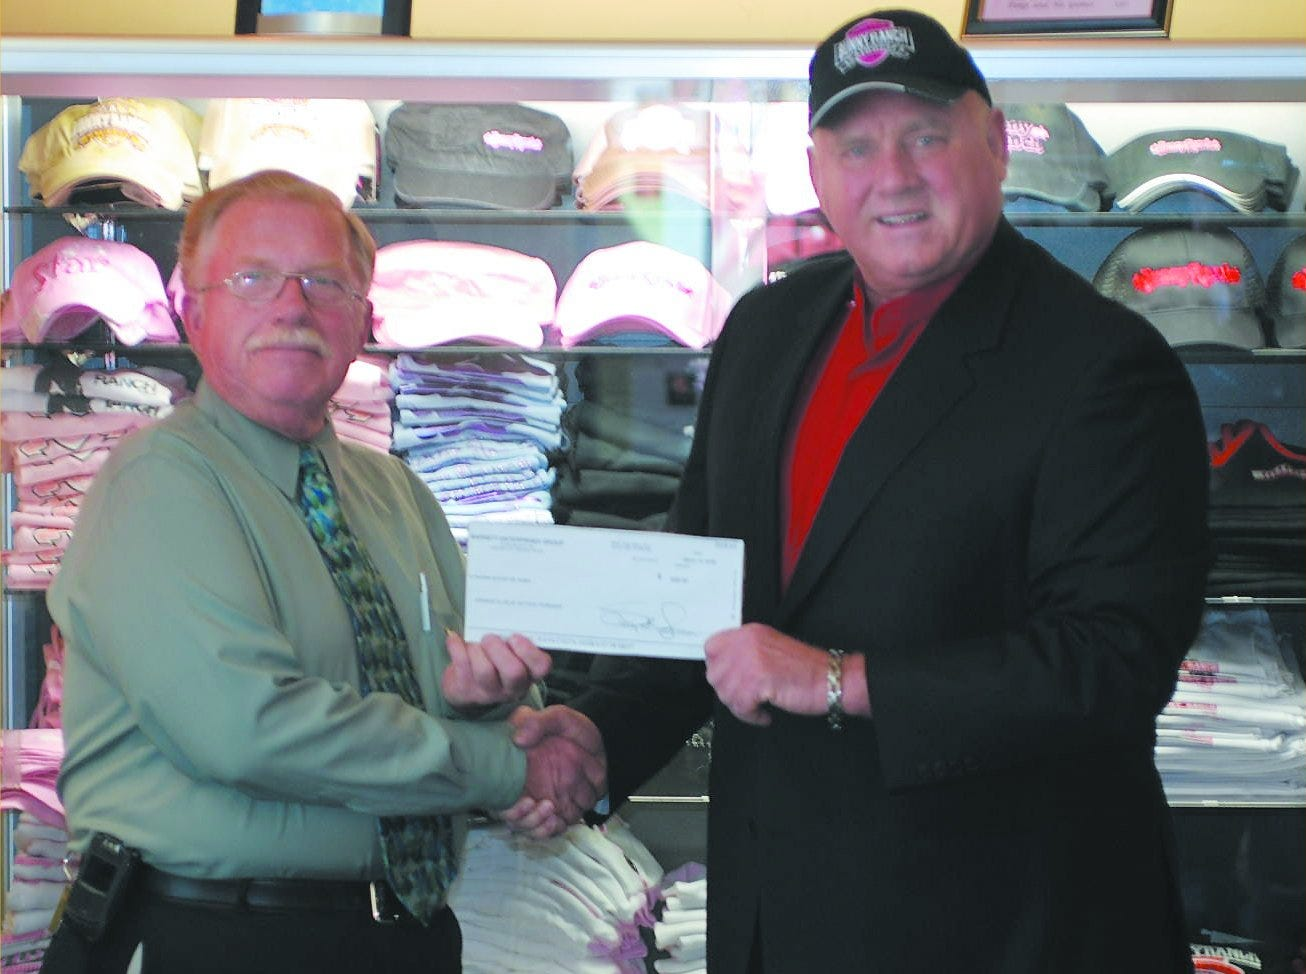 Photo courtesy BunnyRanch  Dalos Graf, President of Kiwanis Club of Dayton Township, accepts a check from Dennis Hof of The BunnyRanch for $500. Employees at the BunnyRanch raised the money to assist the service club to achieve its fund-raising goal of providing scholarships to at least four graduating seniors from the area.